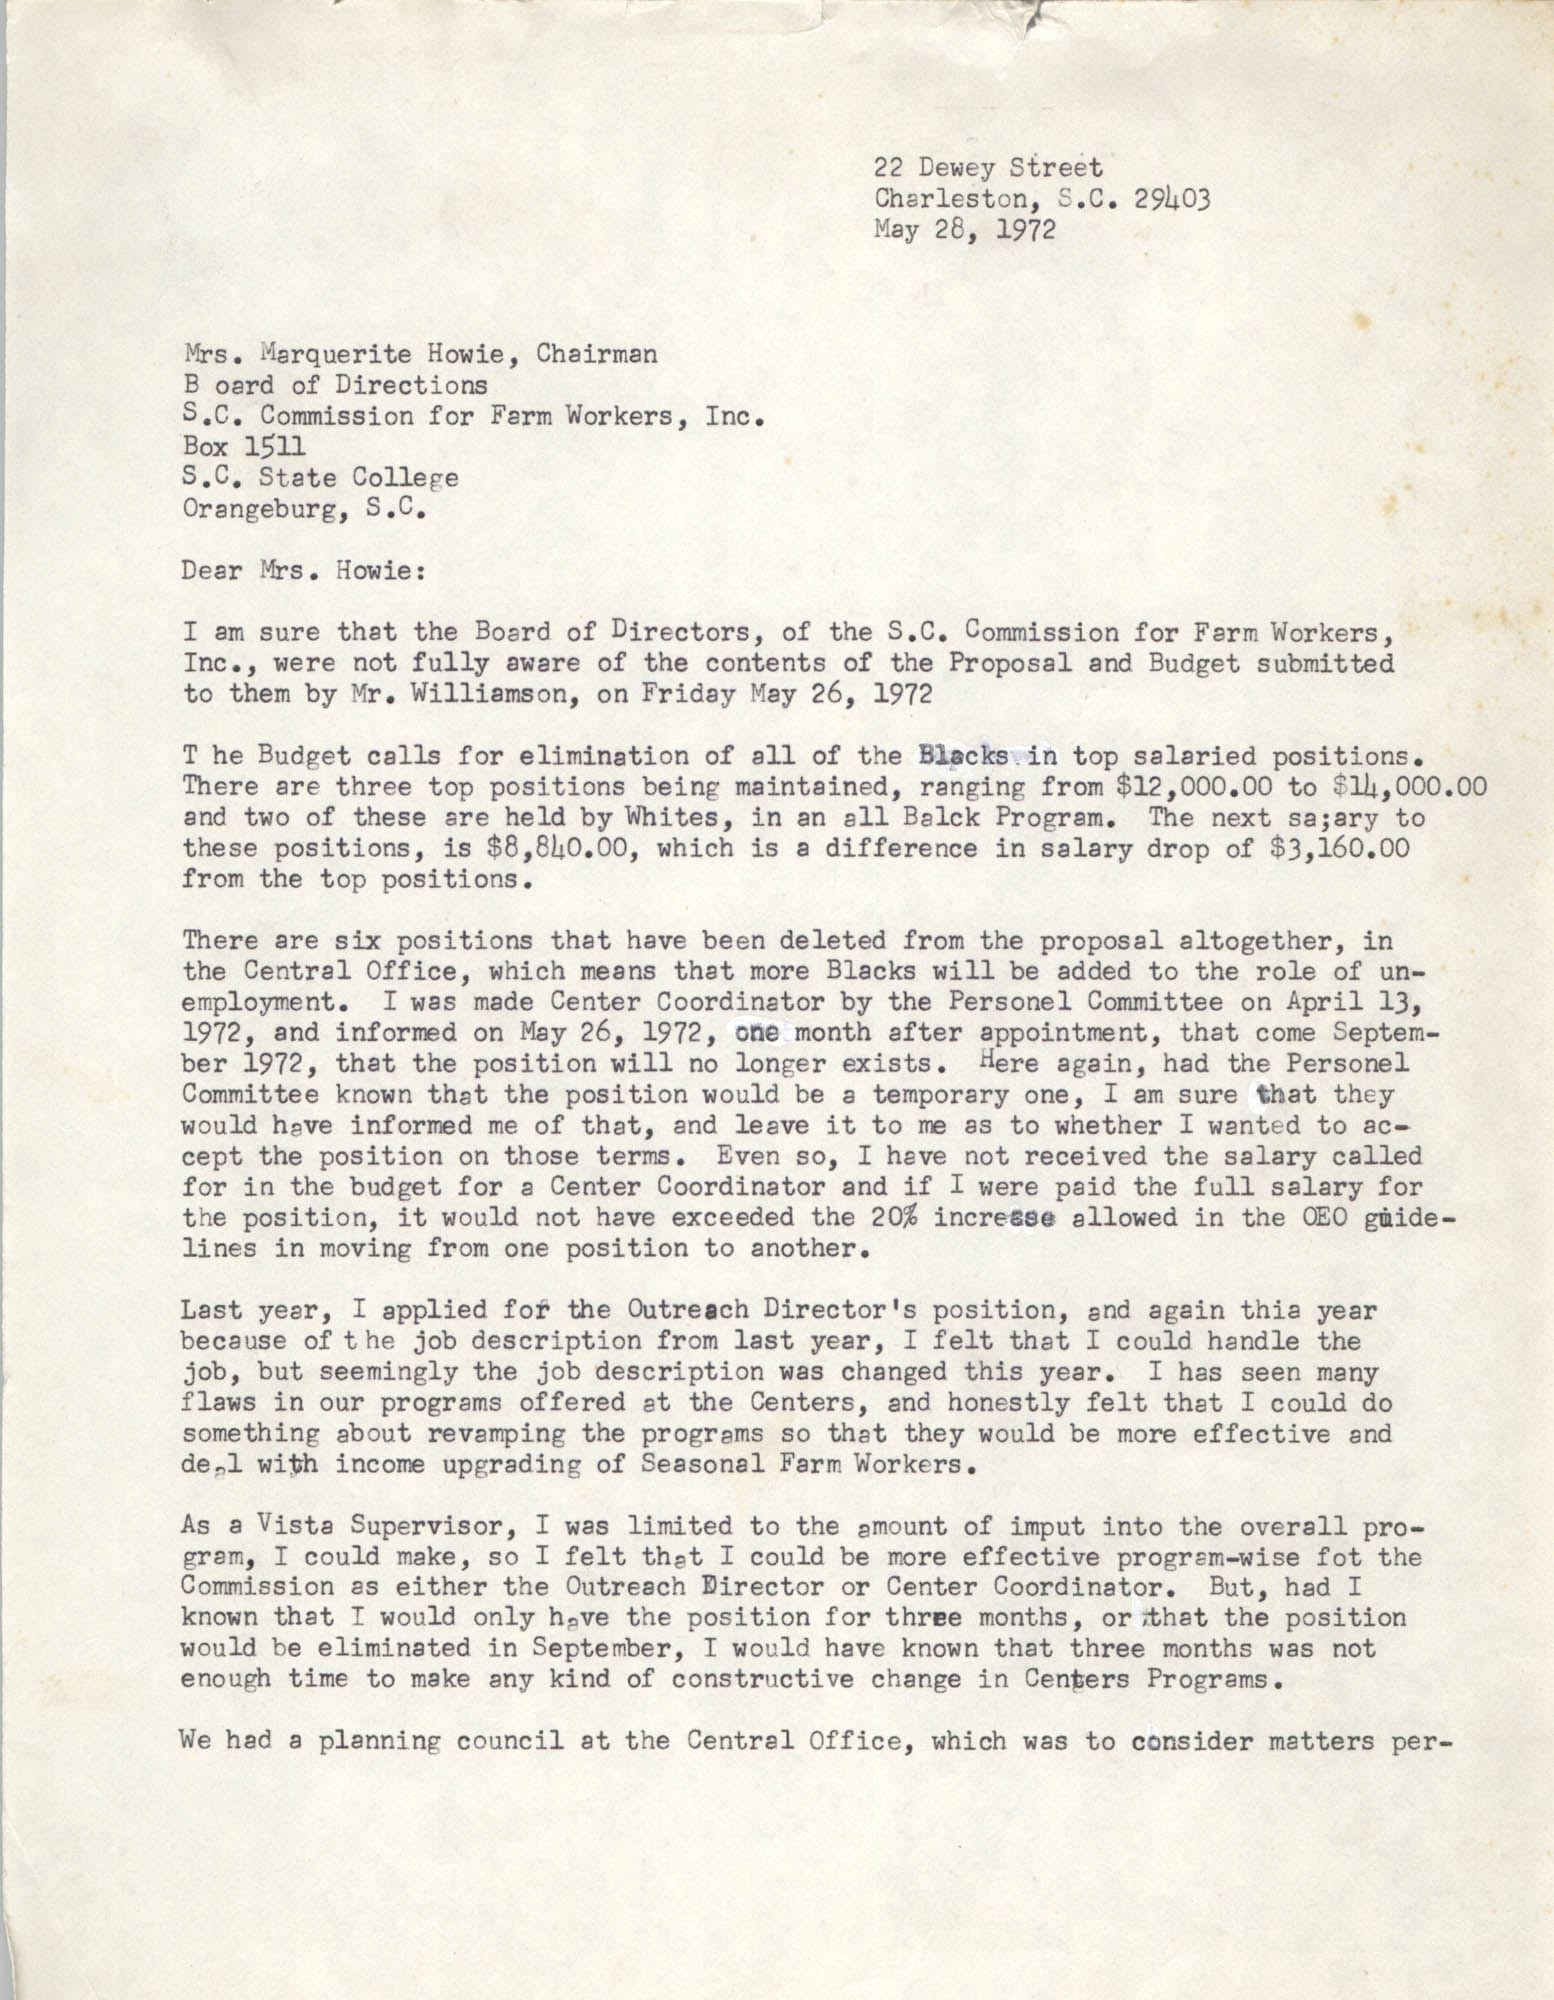 Letter from Bernice Robinson to Marquerite Howie, May 28, 1972